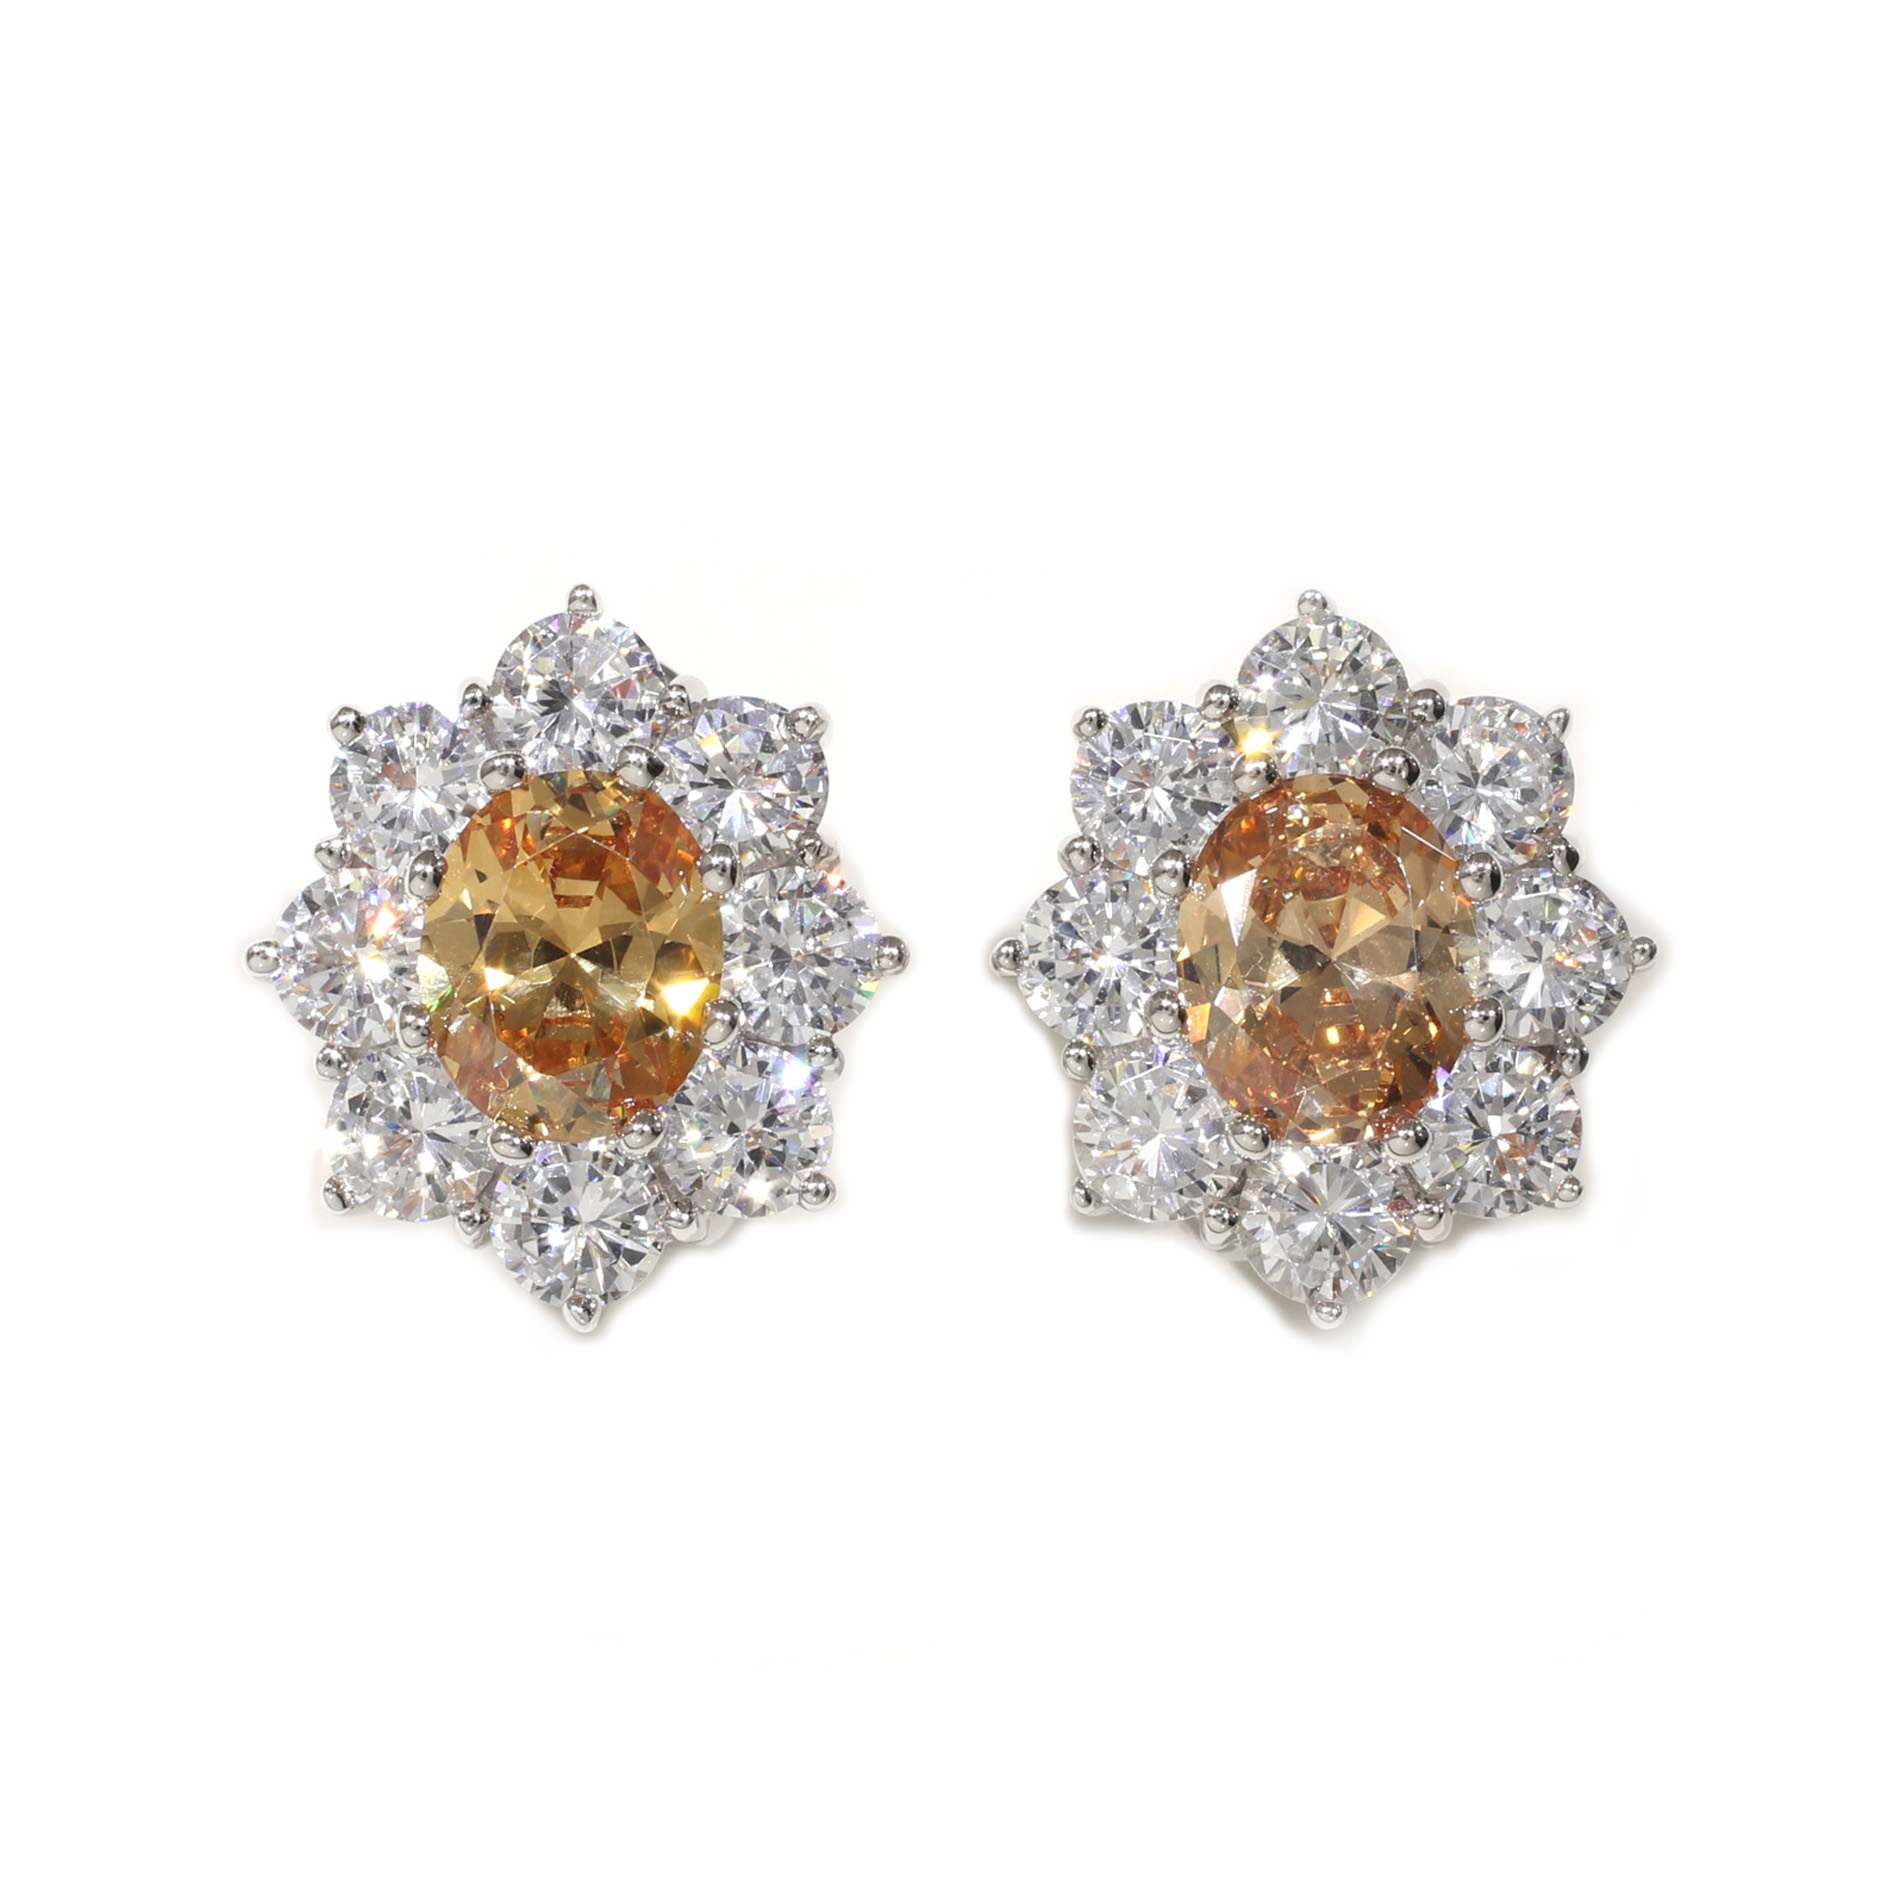 Large Champagne Halo Earrings